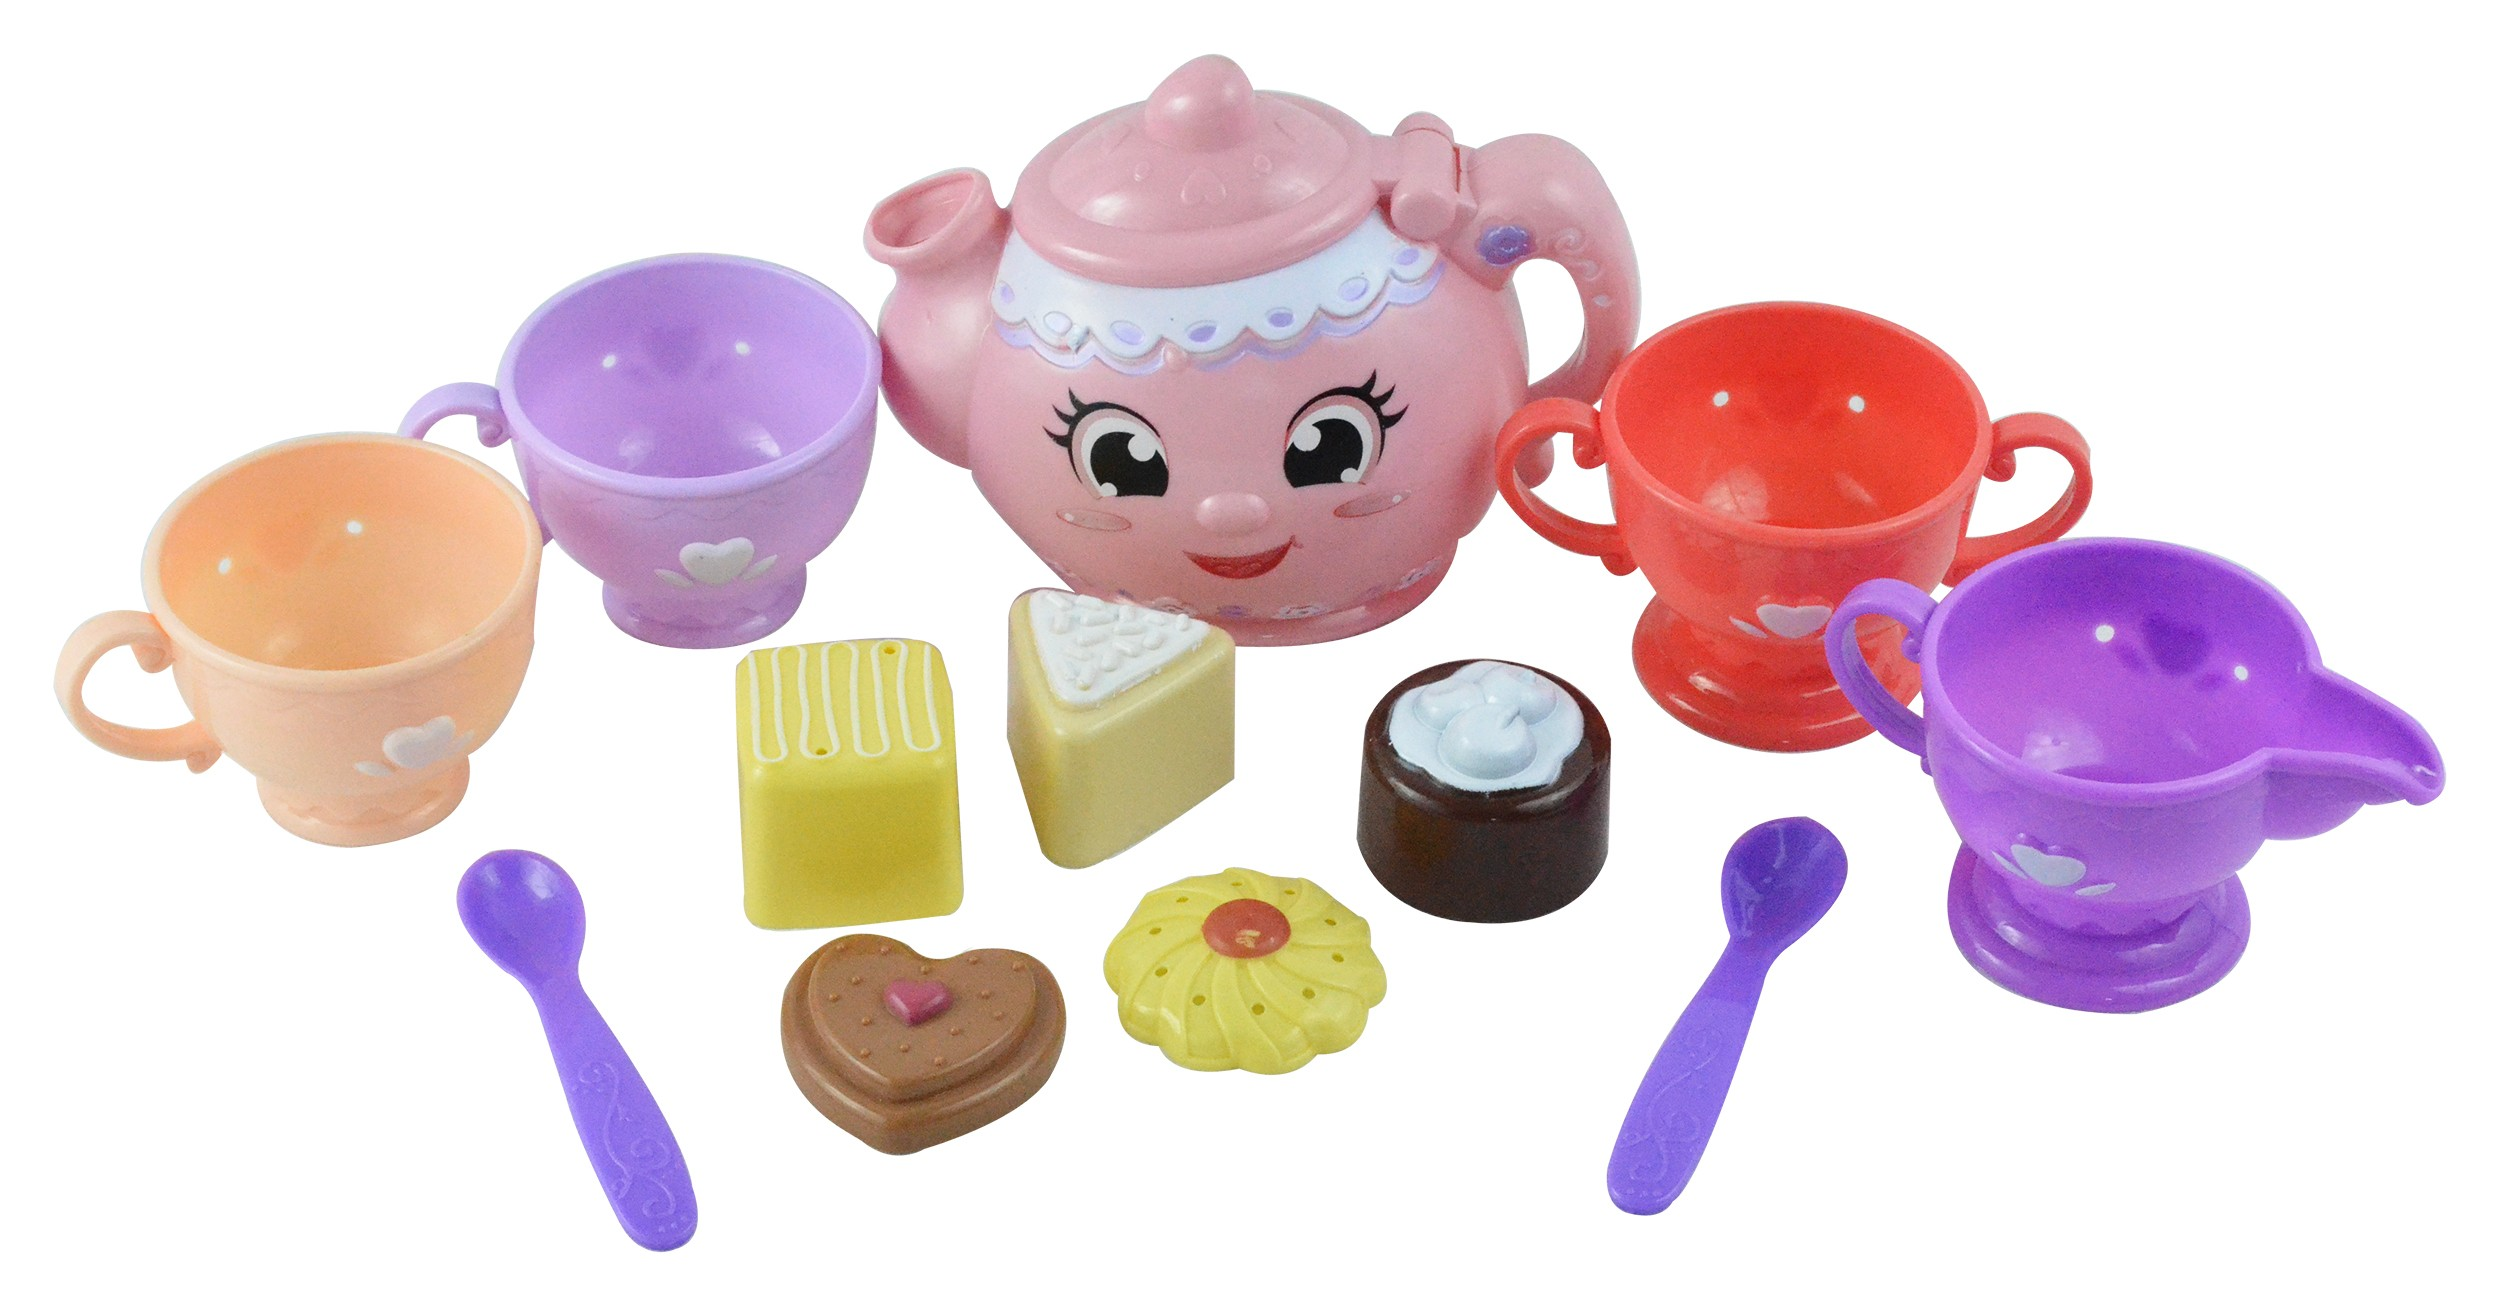 Tea Party Kitchen Set Play Food Toy, 12pc